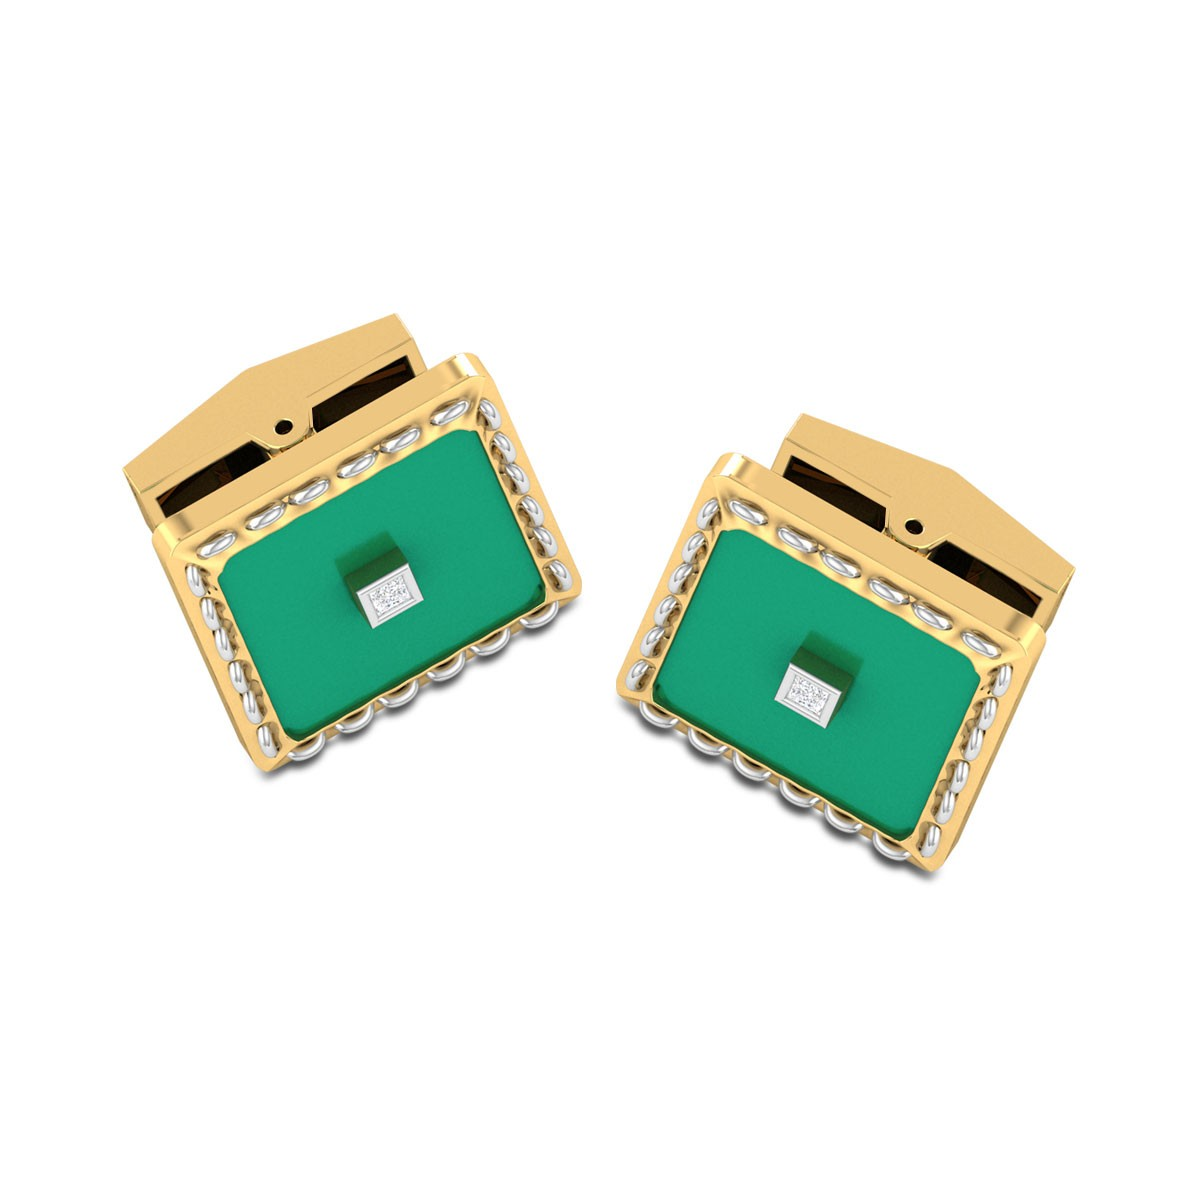 Aryan Square Diamond Cufflinks